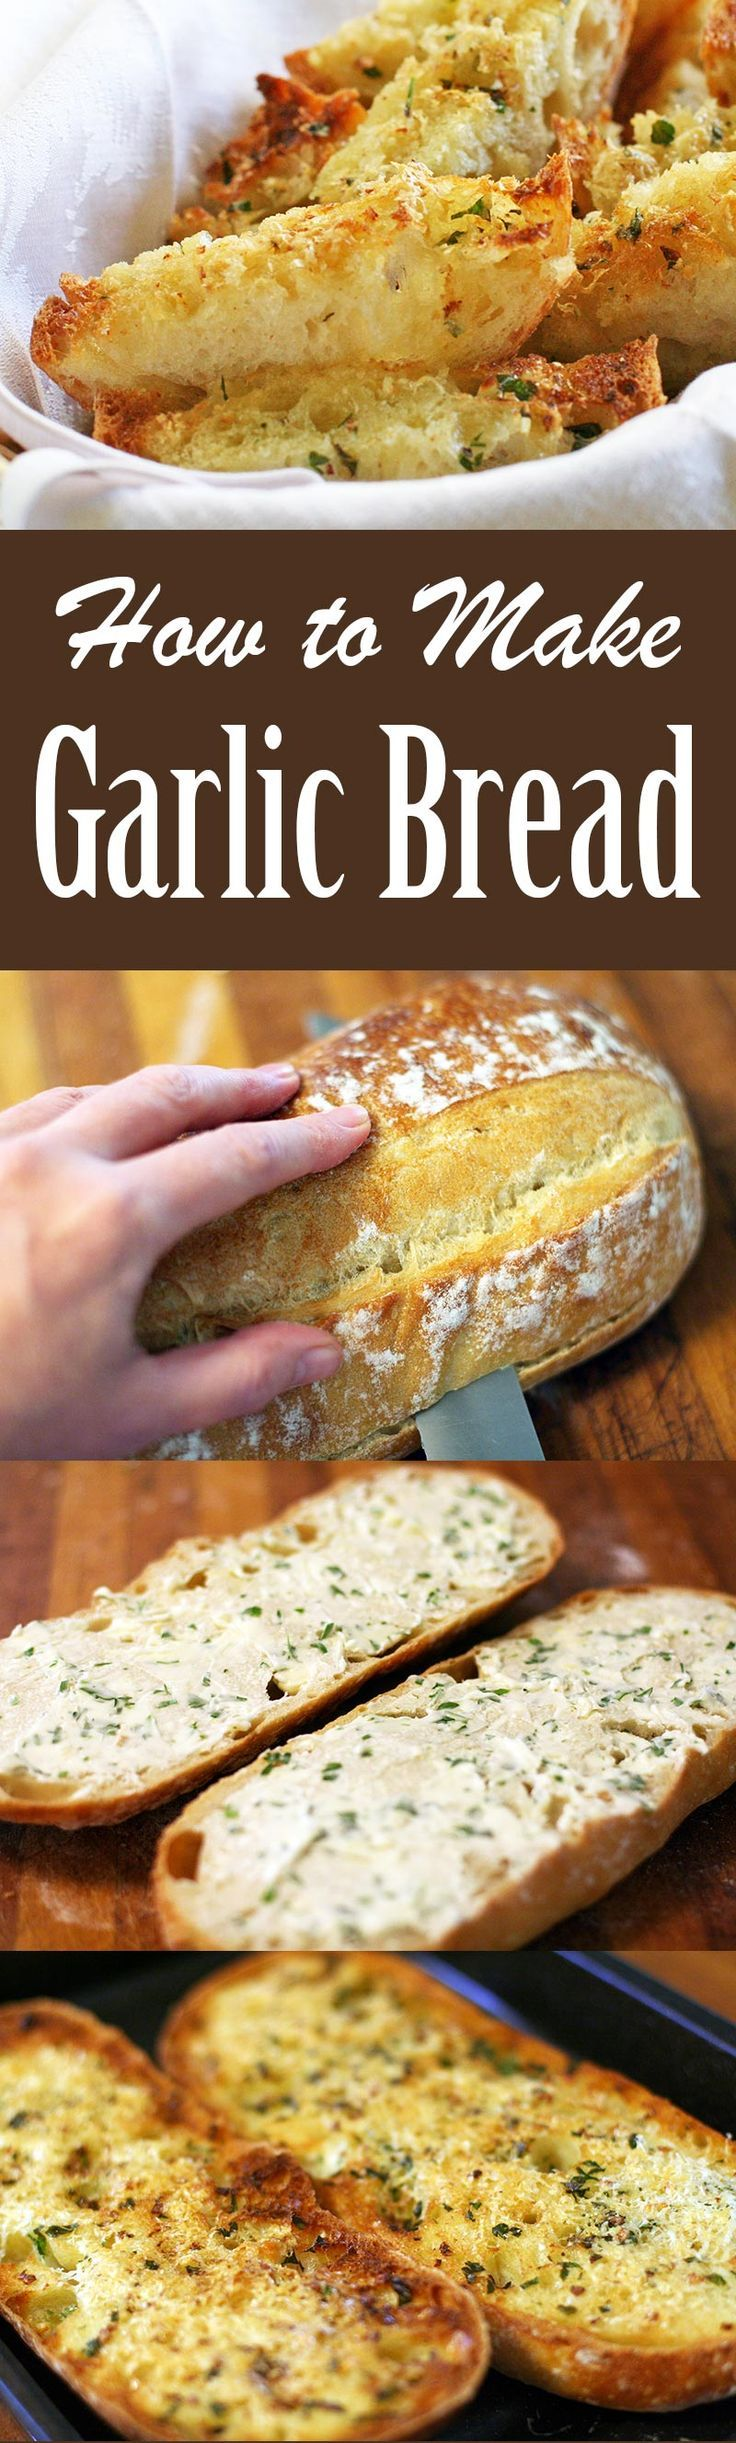 How to Make the BEST Garlic Bread! 2 EASY ways—one toasted and crispy from the broiler, the other soft from being wrapped in aluminum foil and heated in the oven.